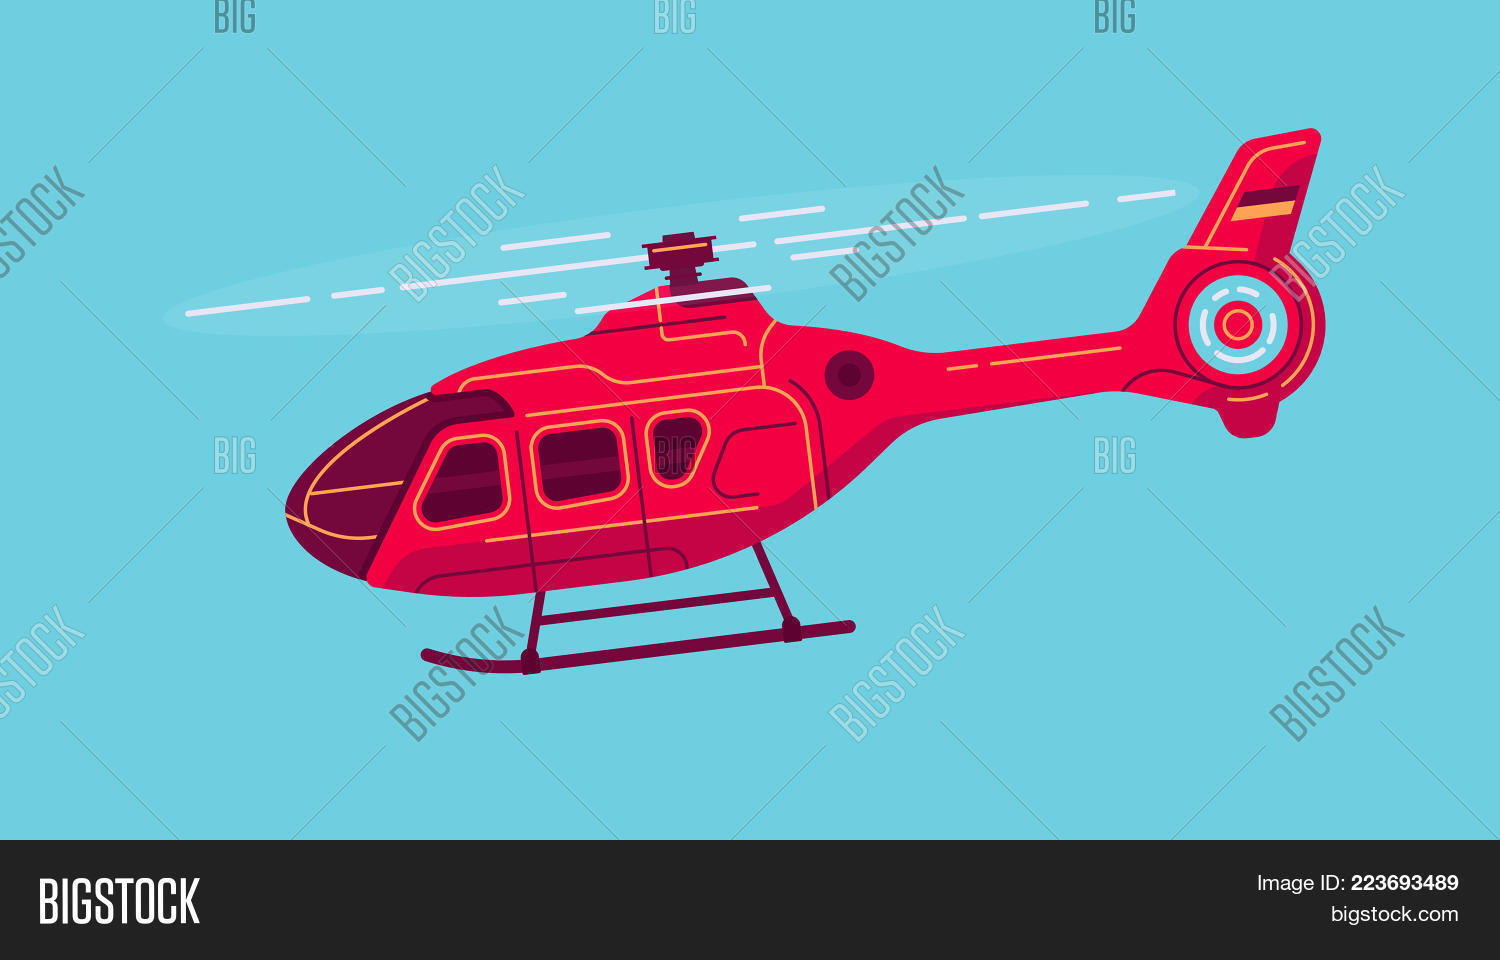 Cool Vector Civil Helicopter Airway Transport Vehicle All Purpose Aircraft In Trendy Flat Design